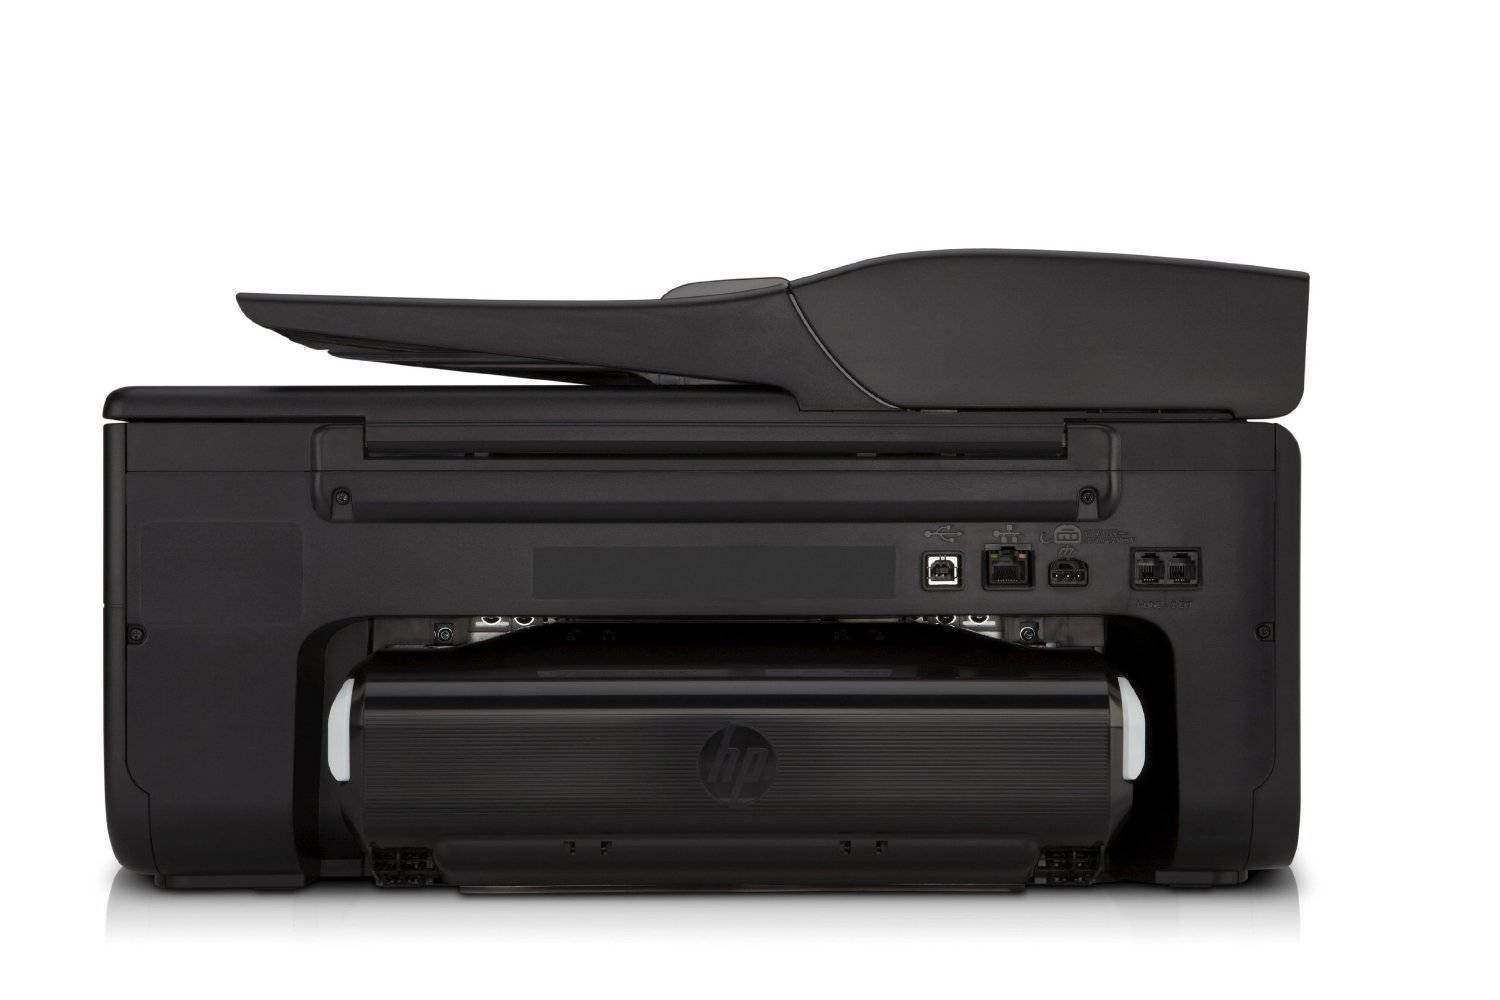 HP Officejet 6700 Multifunktionsdrucker im Test ...